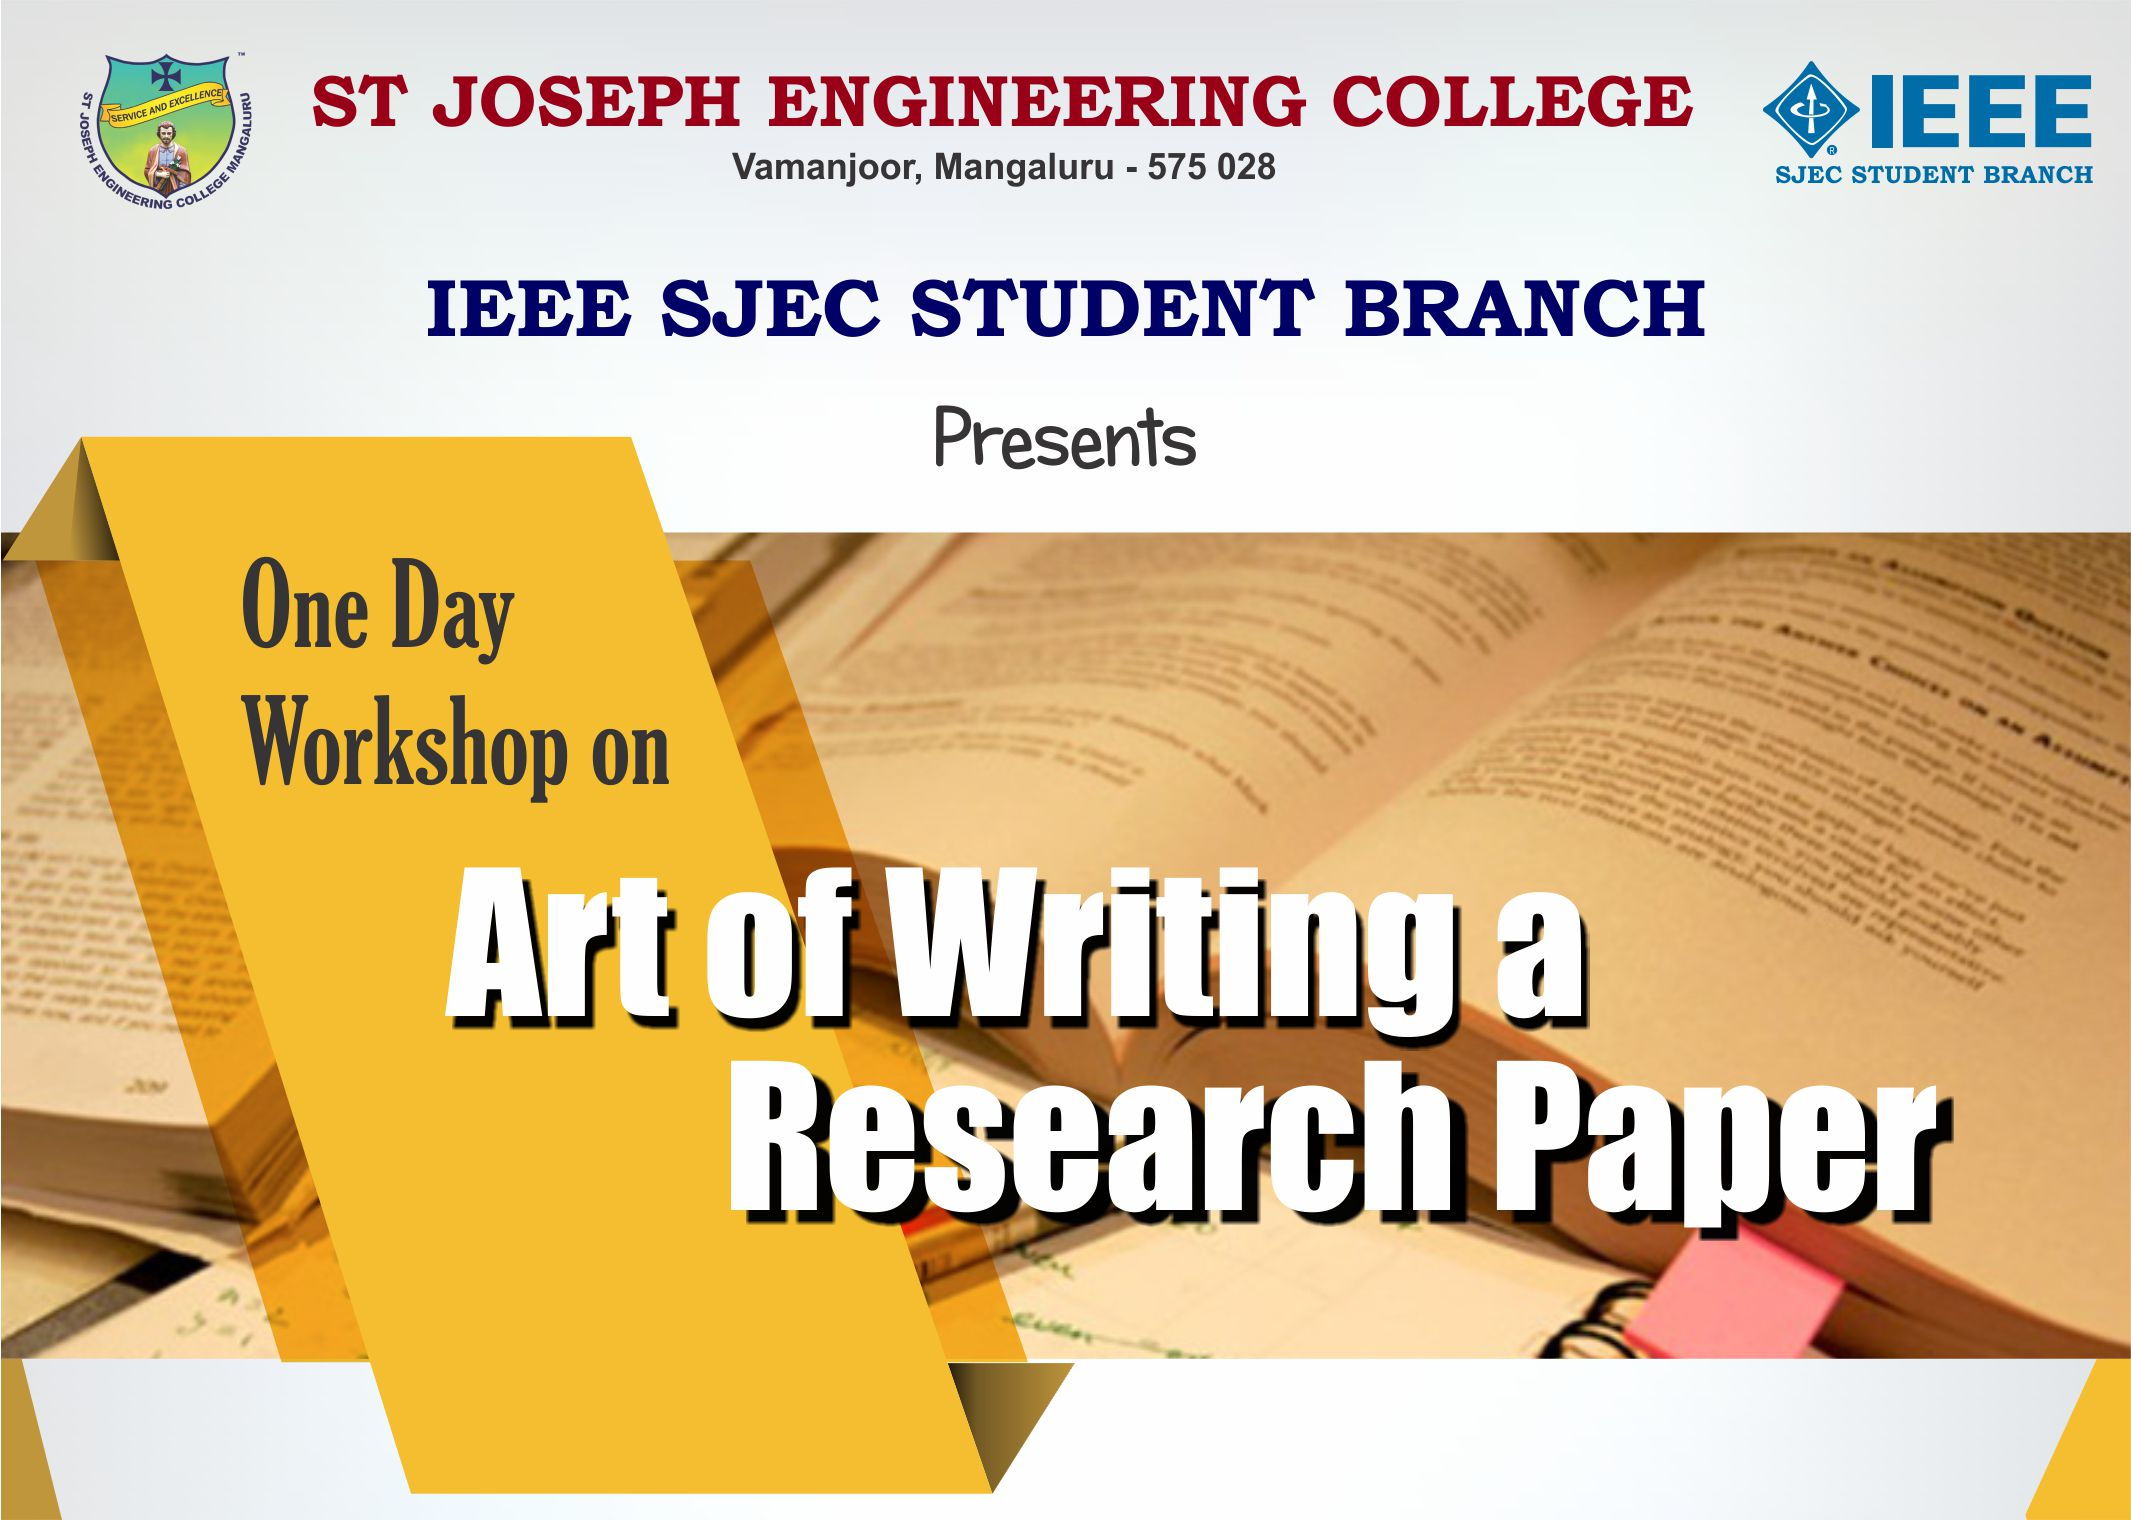 011 Workshop Banner Research Paper Striking Writing Papers By James Lester Pdf A Complete Guide 16th Edition Outline Full